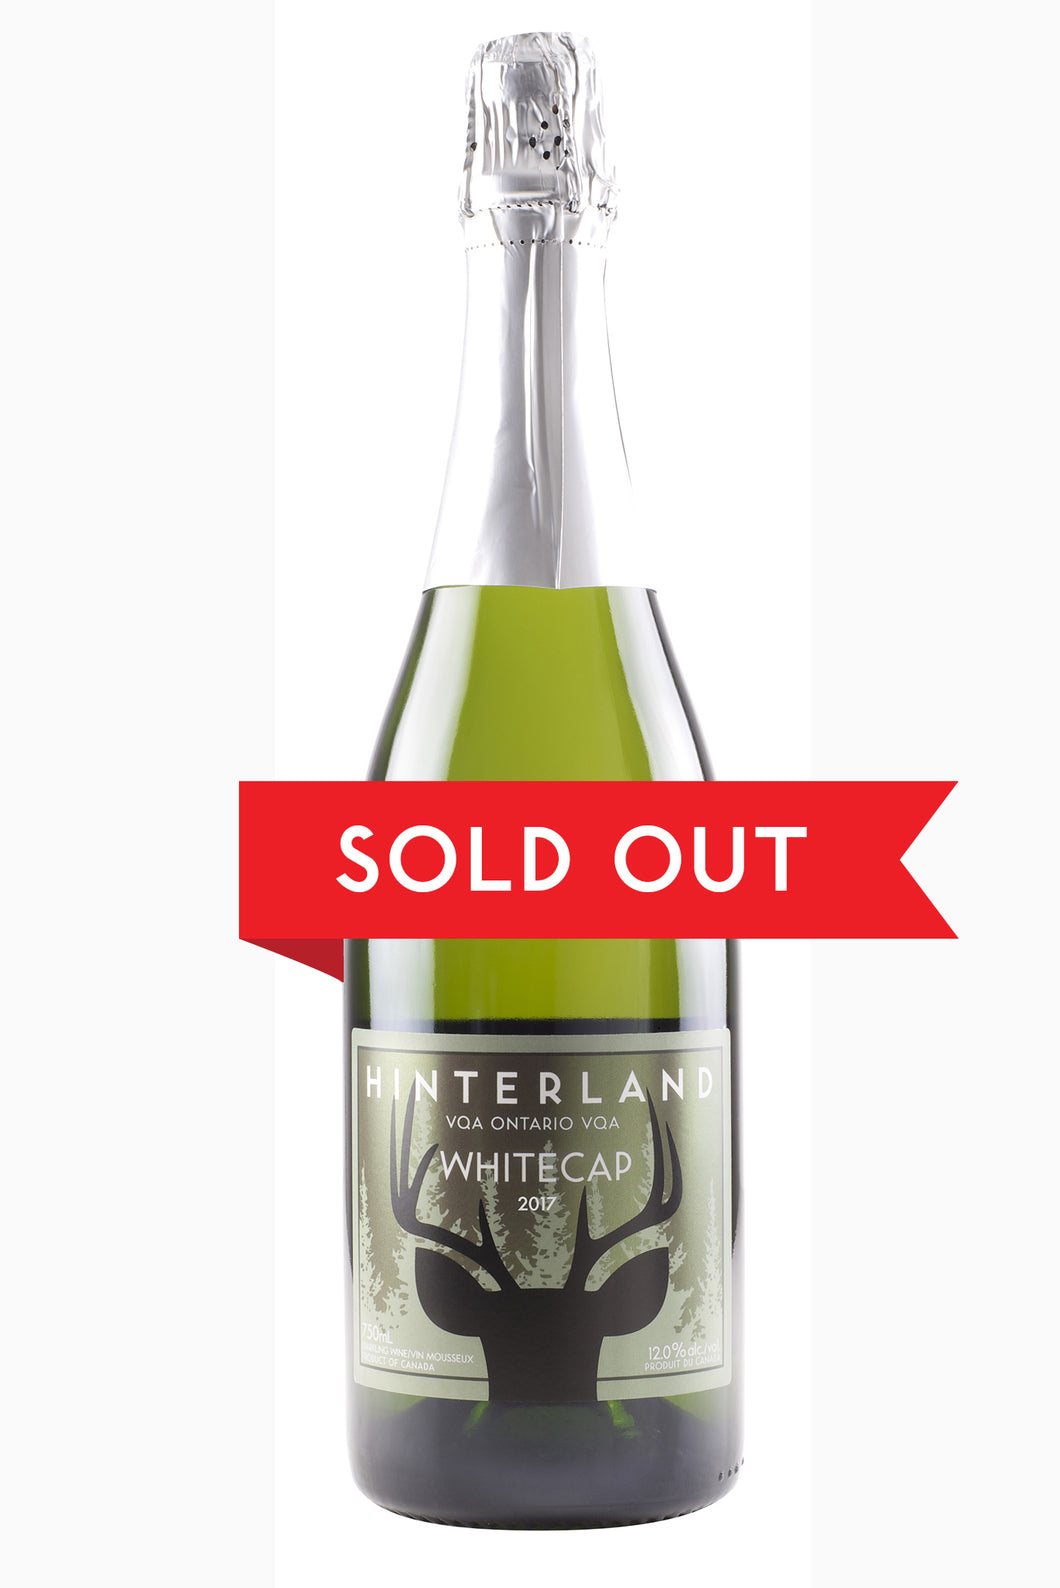 Whitecap 2017 Method Charmat — SOLD OUT